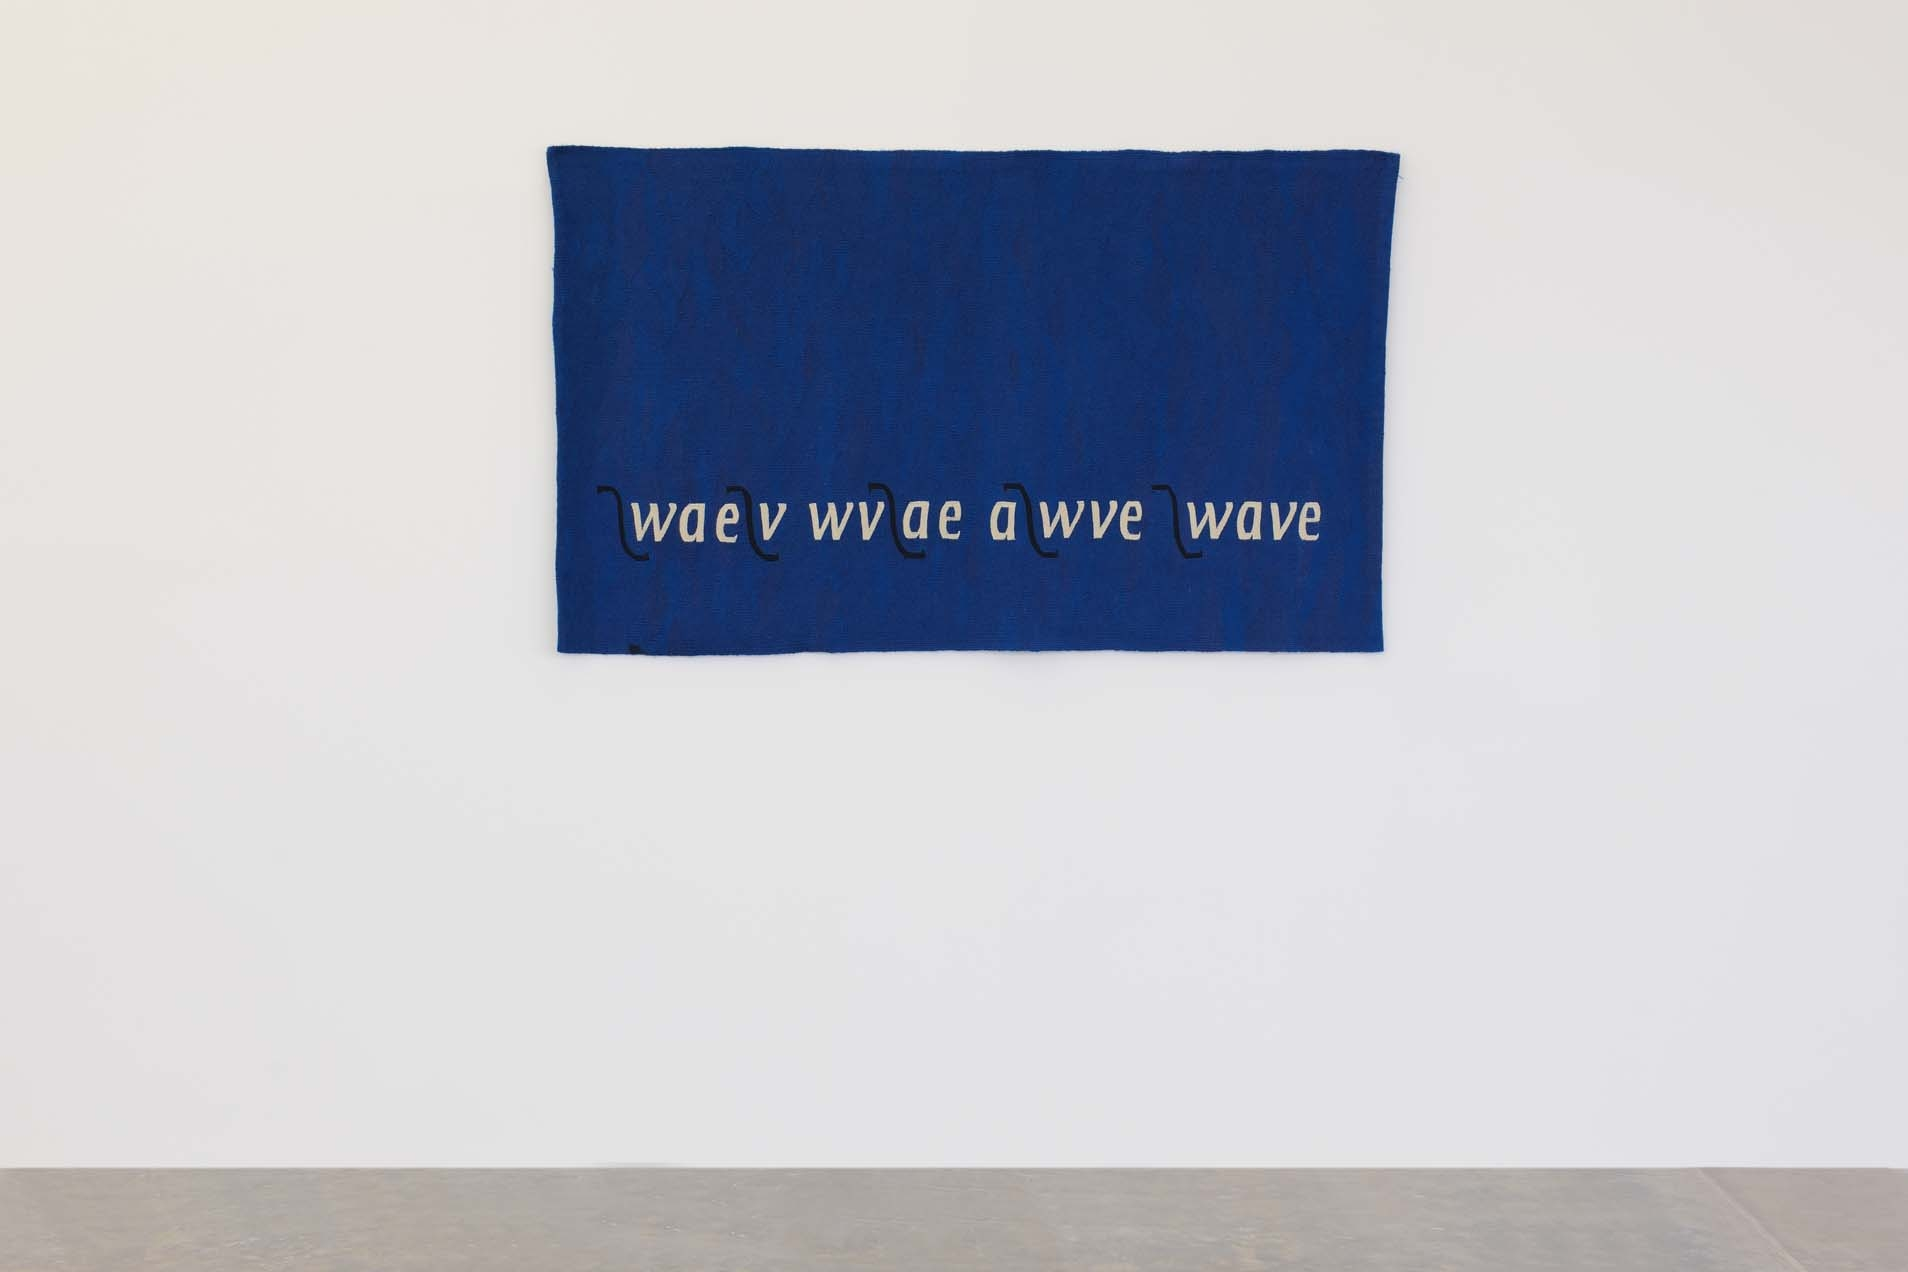 Wave, 1989 with Michael Harvey and Joanna Soroka, Tapestry, wool, 99 x 165 cm, Unique